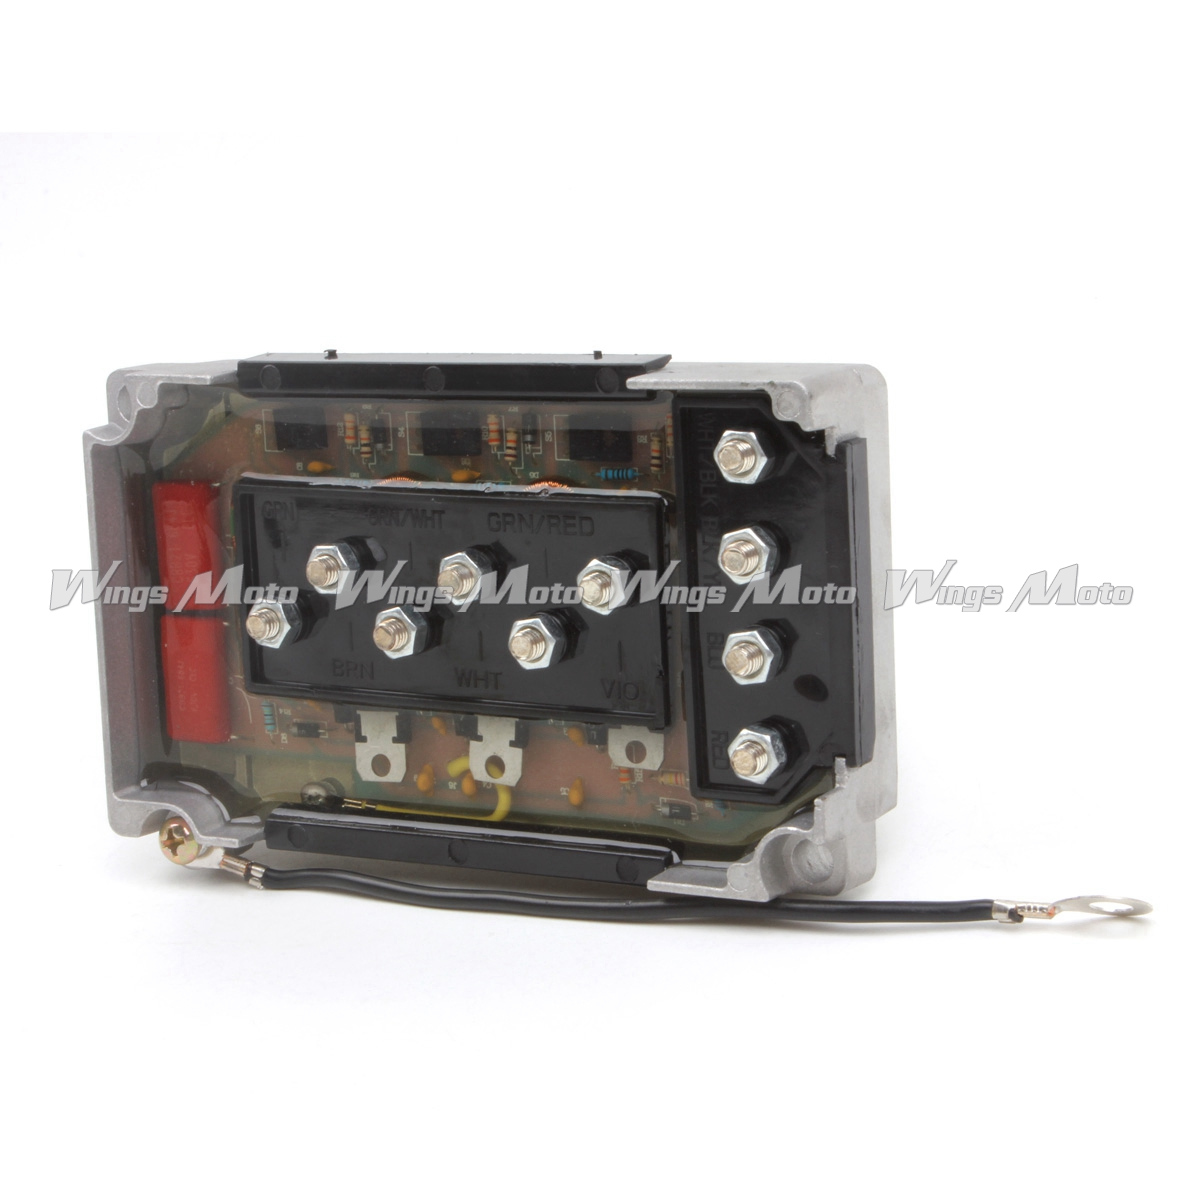 CDI Motor Switch Box Power Pack for Mercury Outboard 50-275 HP 332-7778 332-7778A12